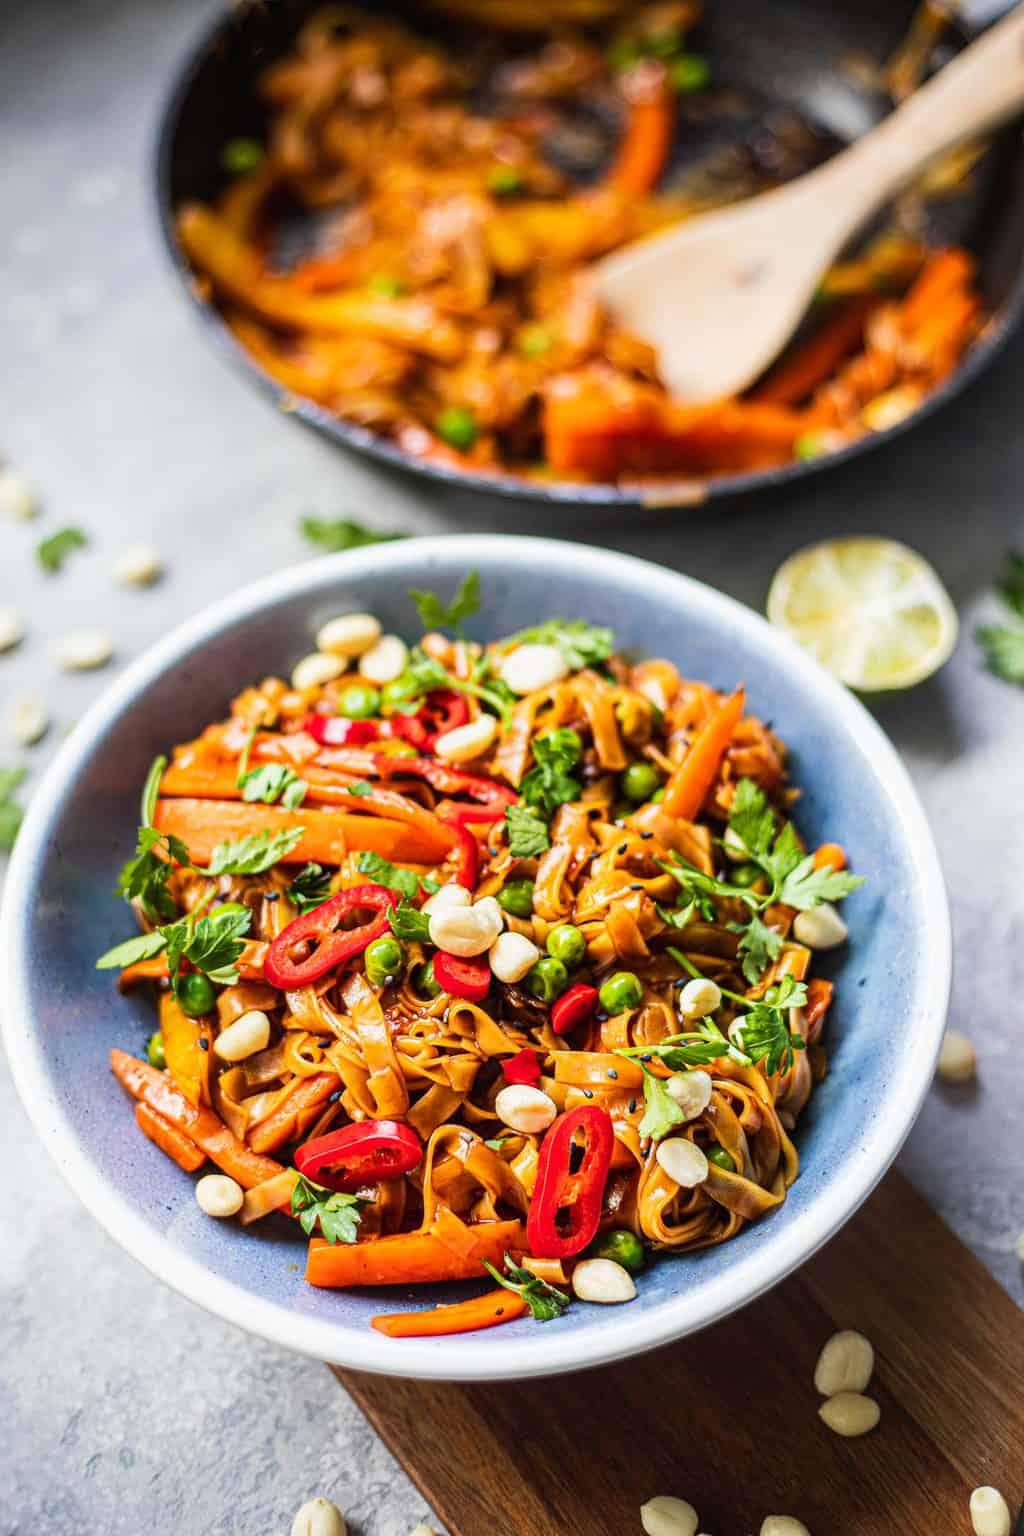 Bowl of vegan Pad Thai with carrots and bell peppers